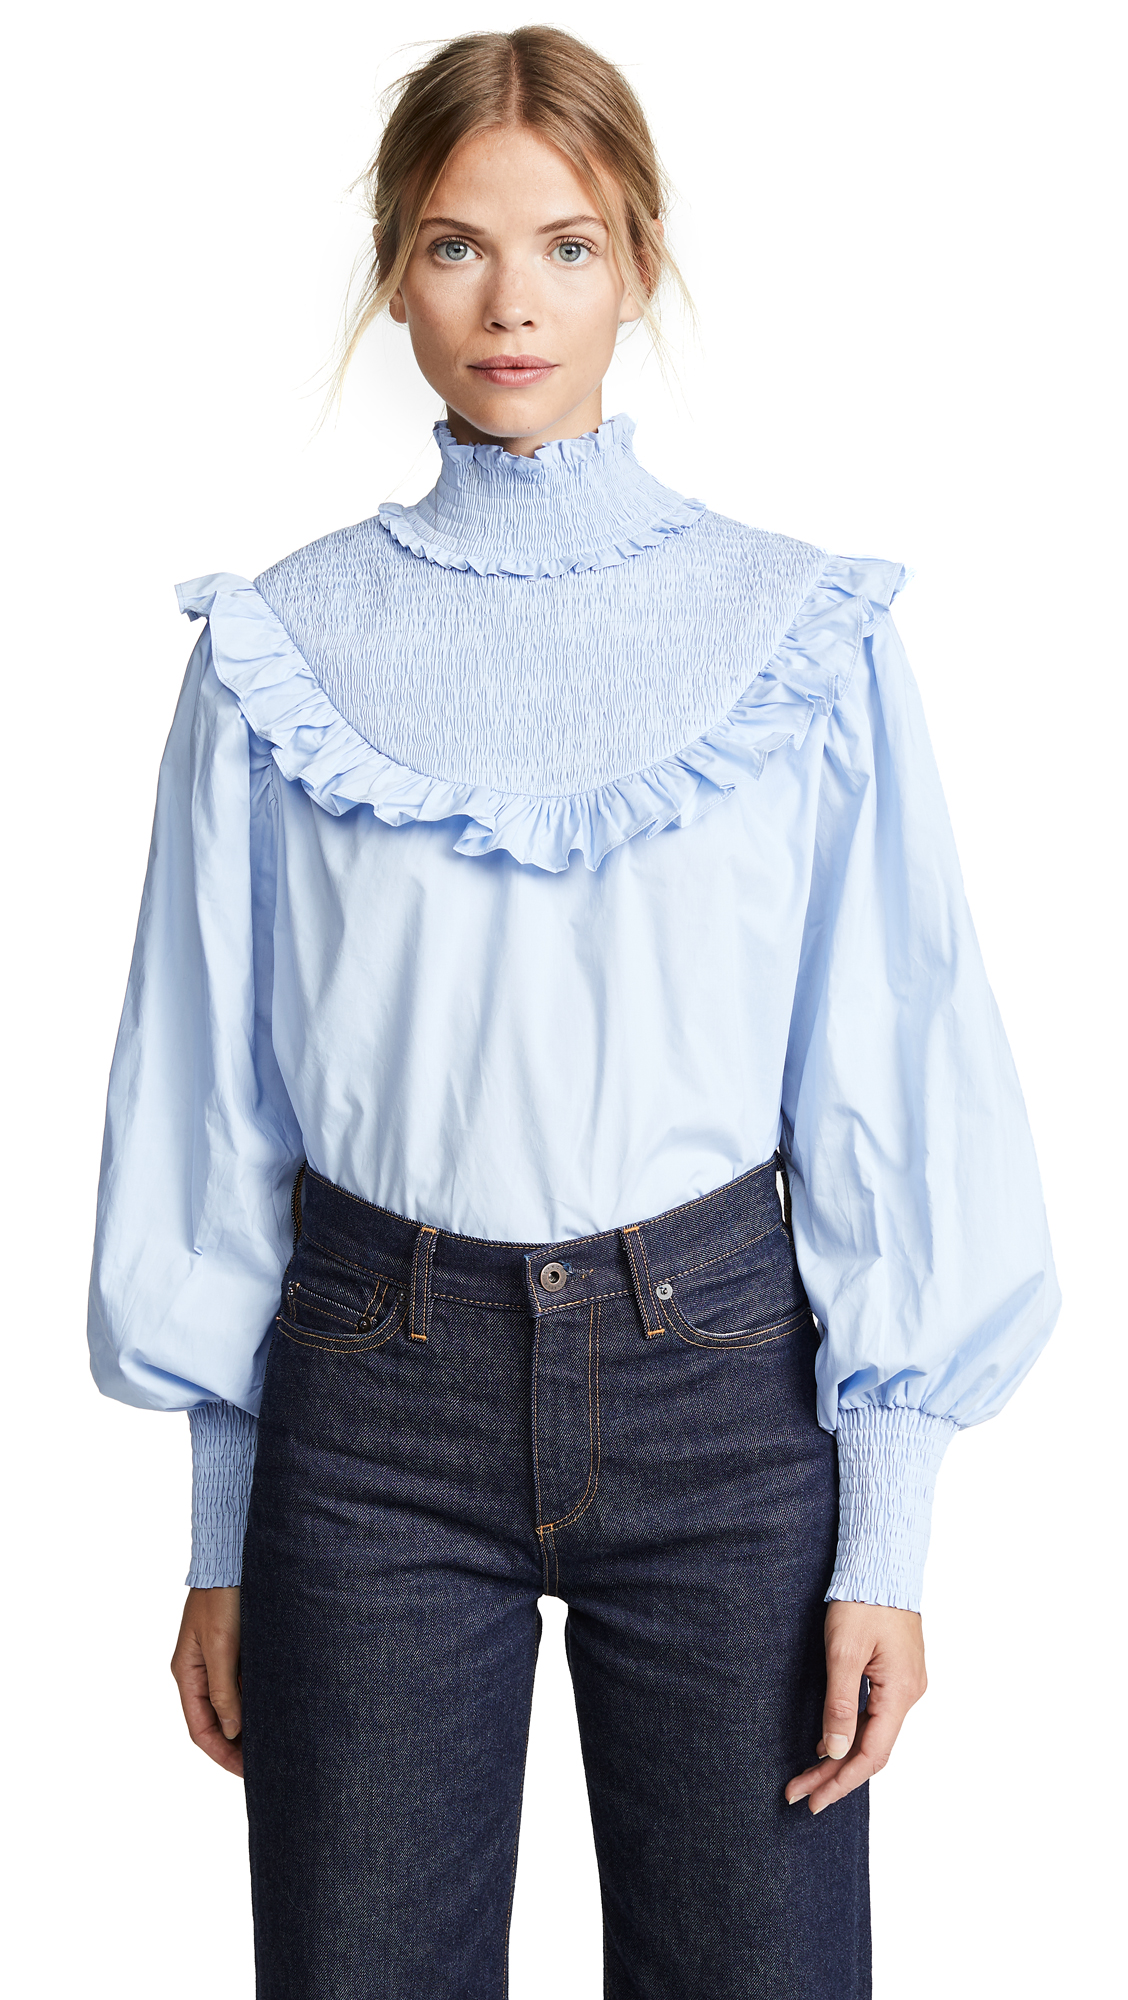 ENGLISH FACTORY Smocked Top in Blue